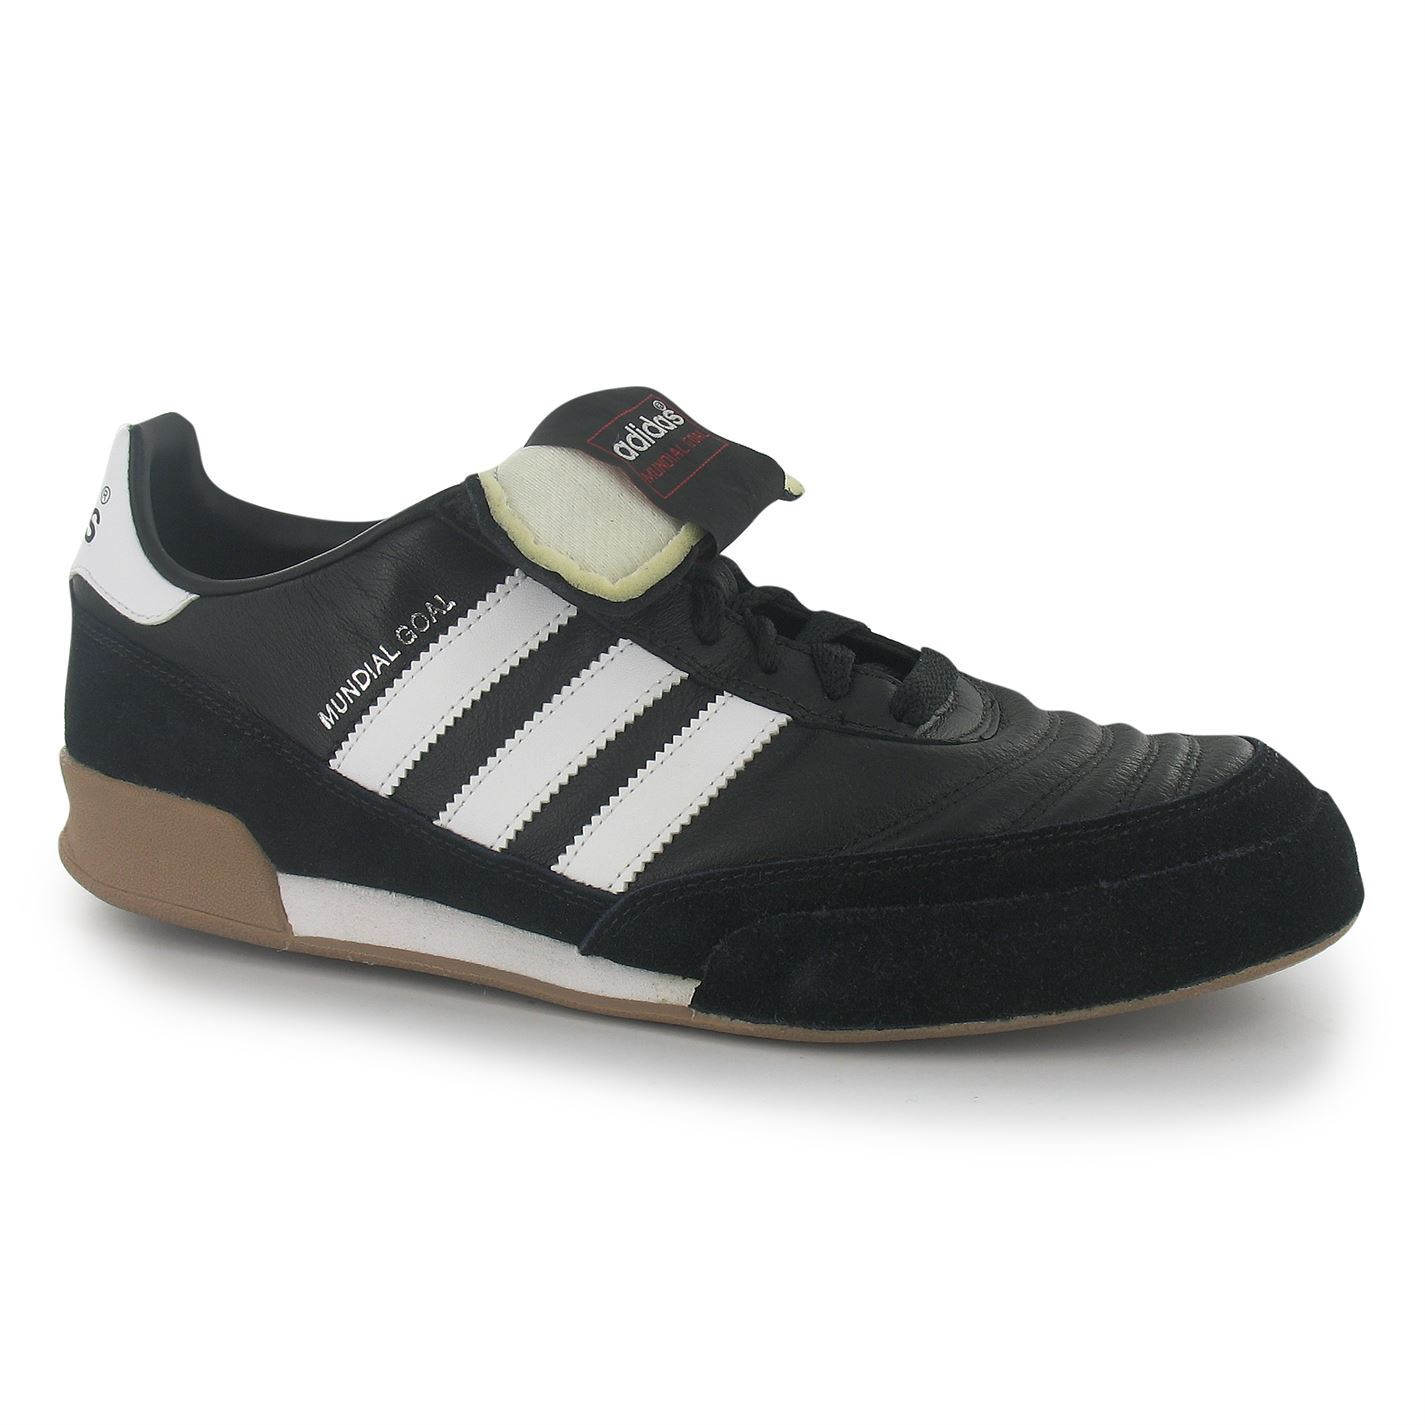 Détails sur Adidas Mundial Goal Indoor football futsal Baskets Homme BlkWht Football Baskets afficher le titre d'origine